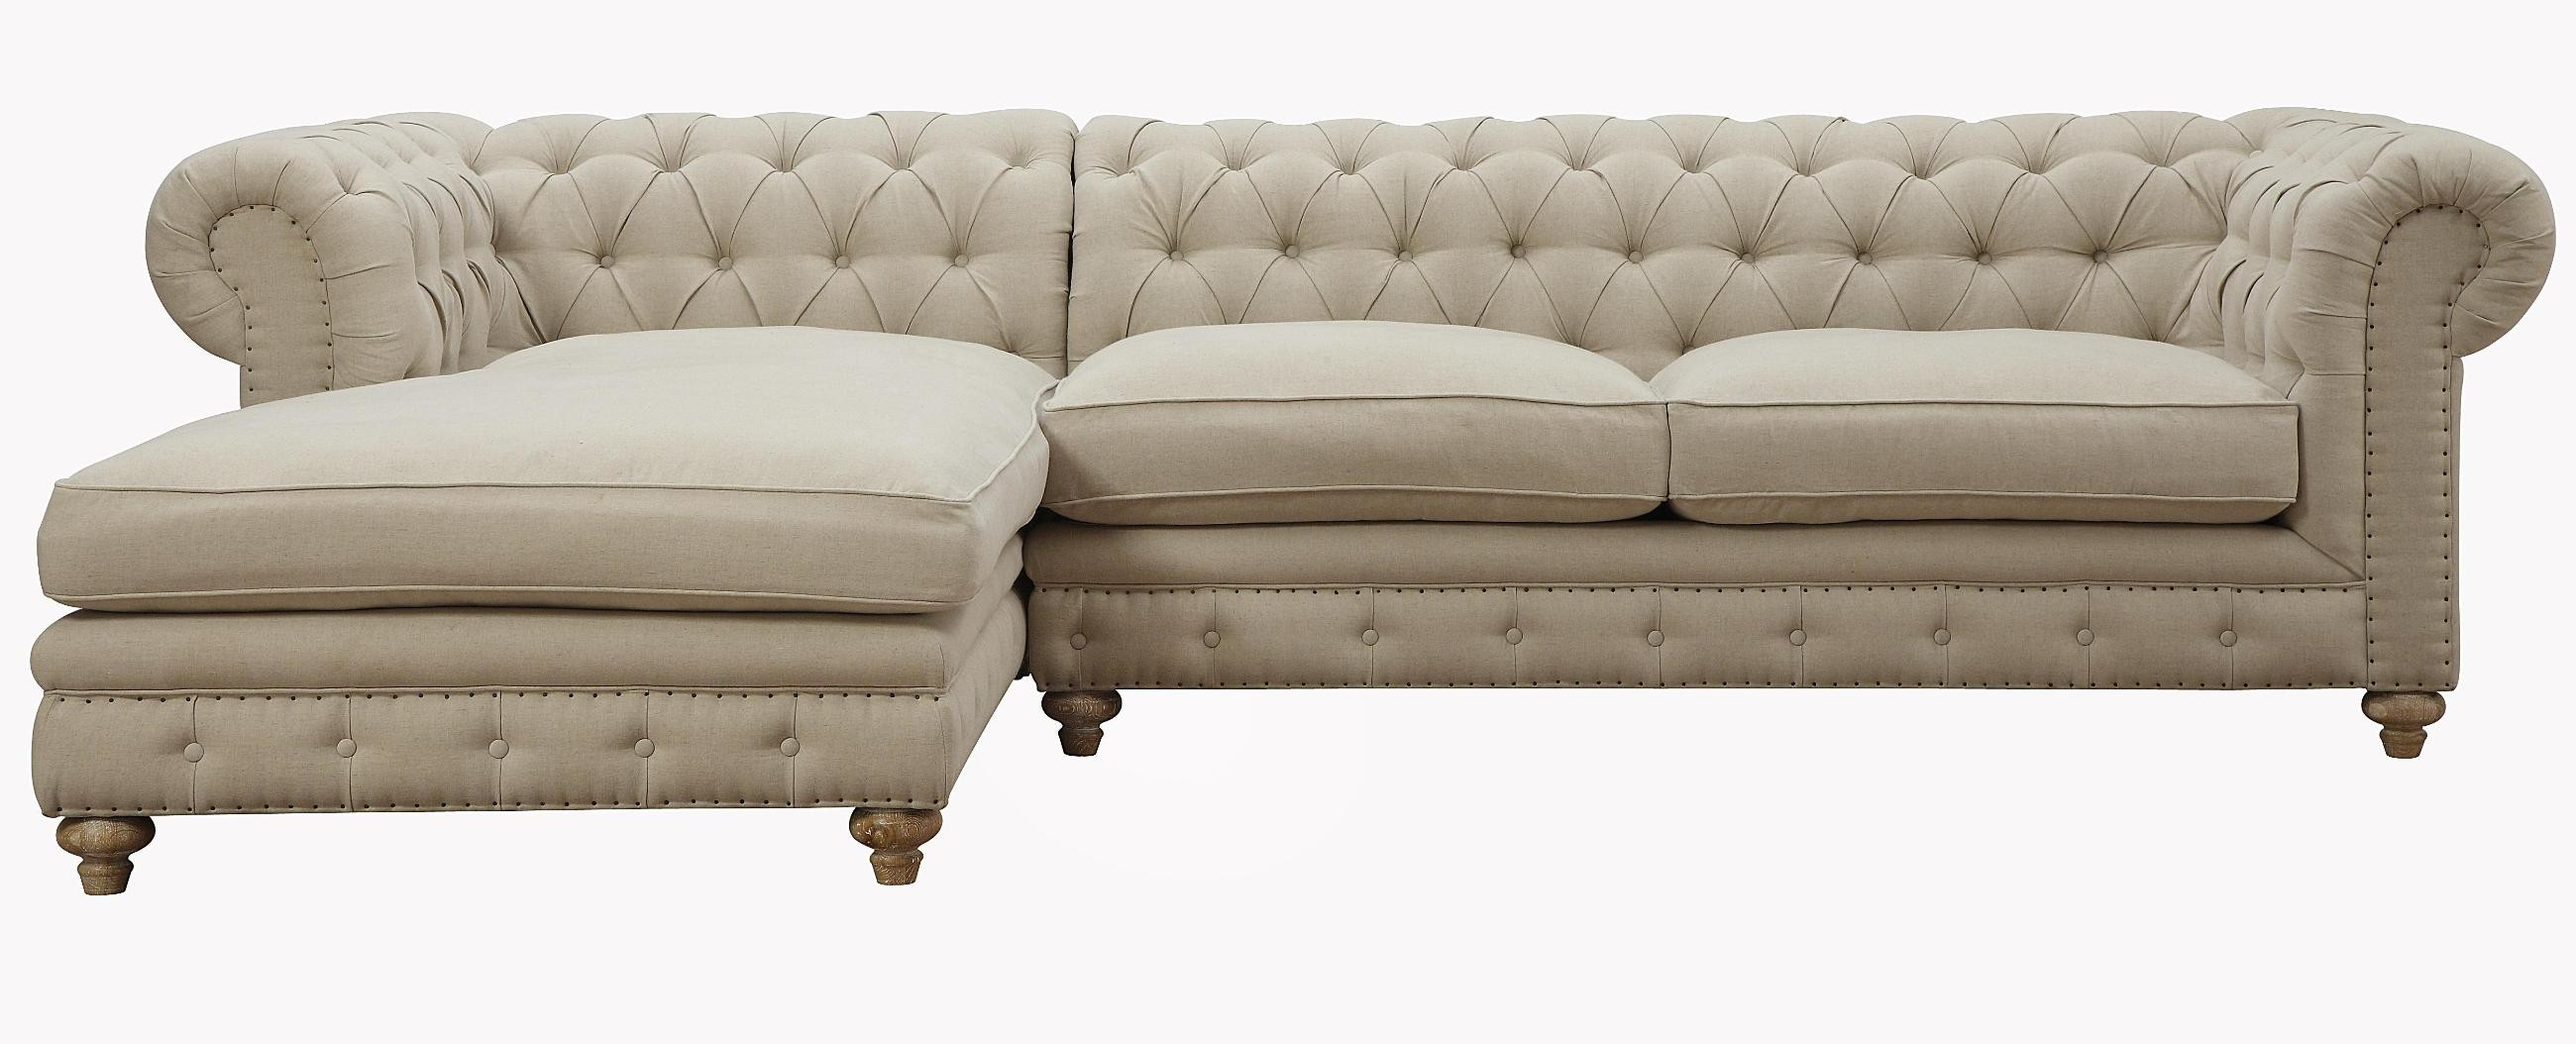 Oxford beige linen laf sectional from tov s19 sec l coleman furniture - Canape chesterfield beige ...